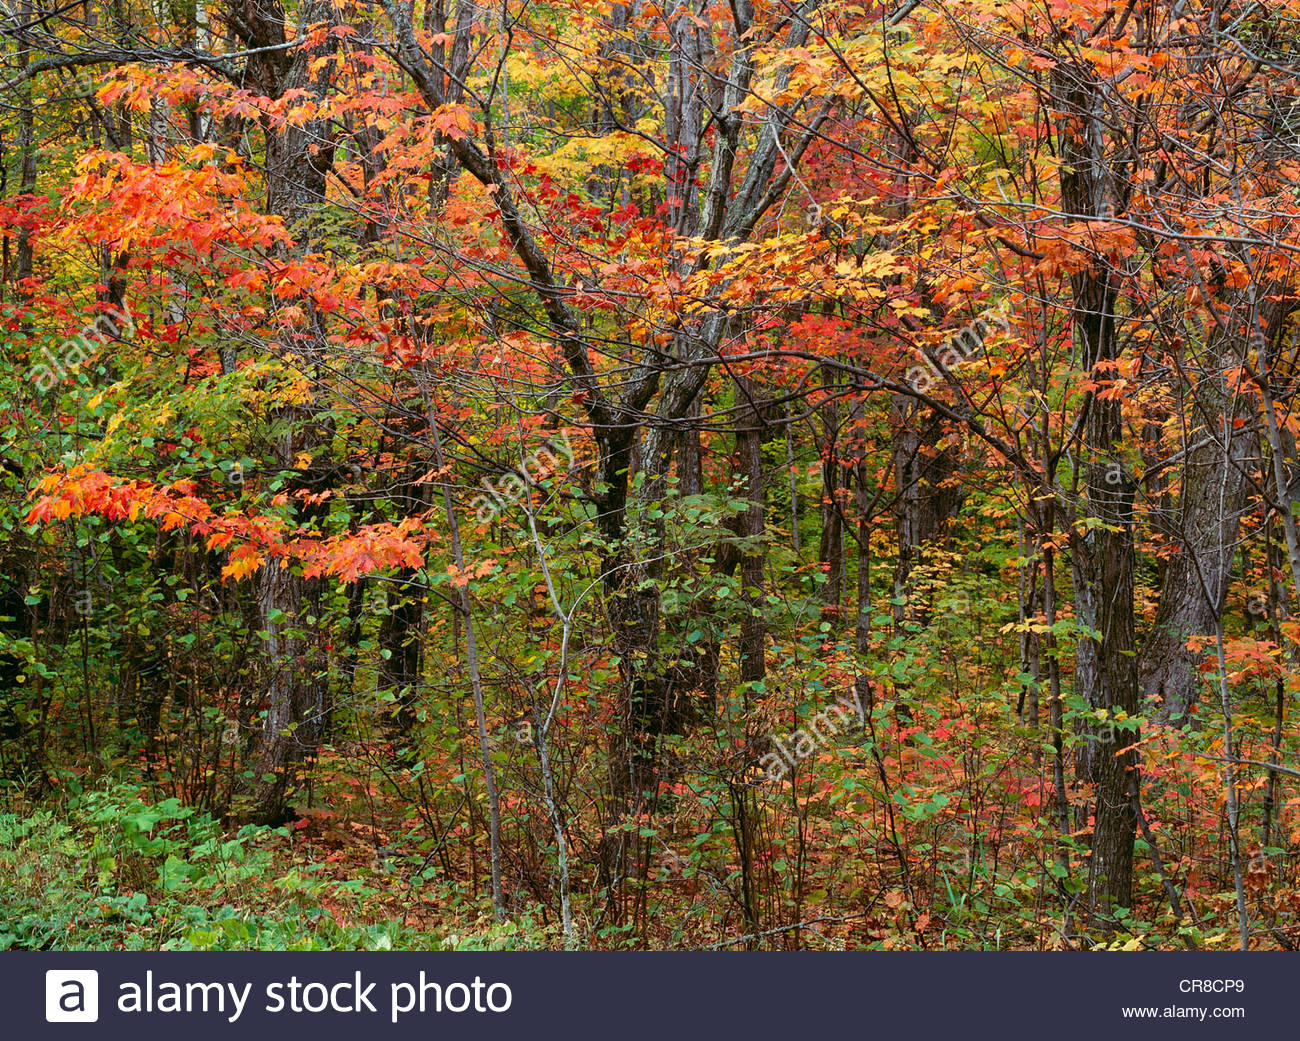 Autumn colors in the Superior National Forest, Minnesota - Stock Image